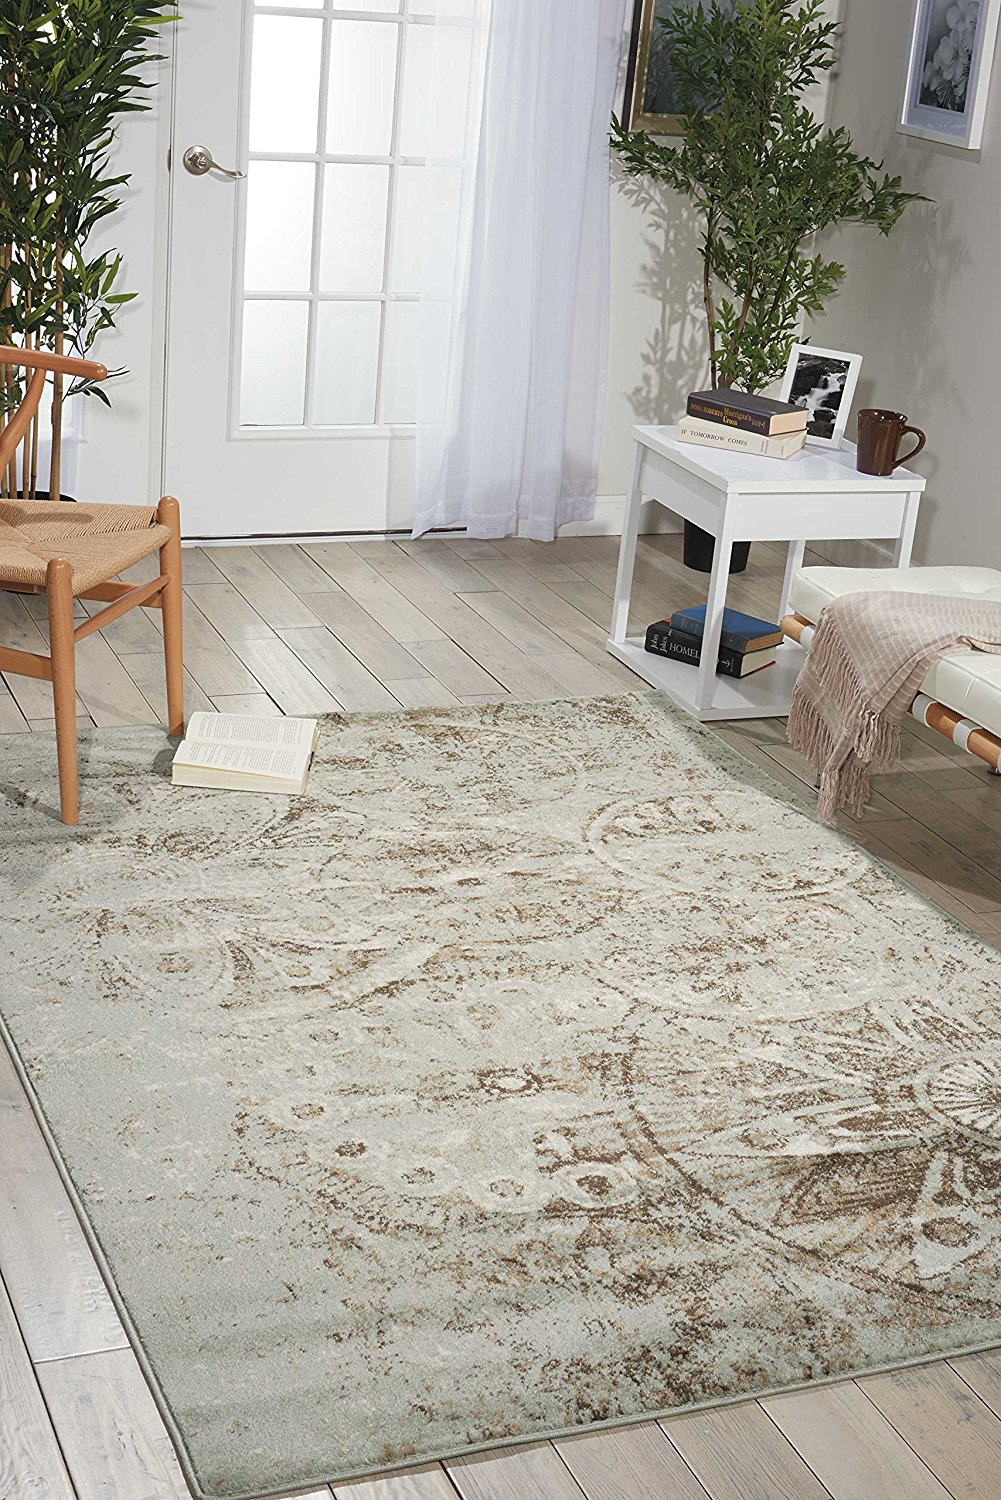 Gorgeous Farmhouse Style Area Rugs Under $100!